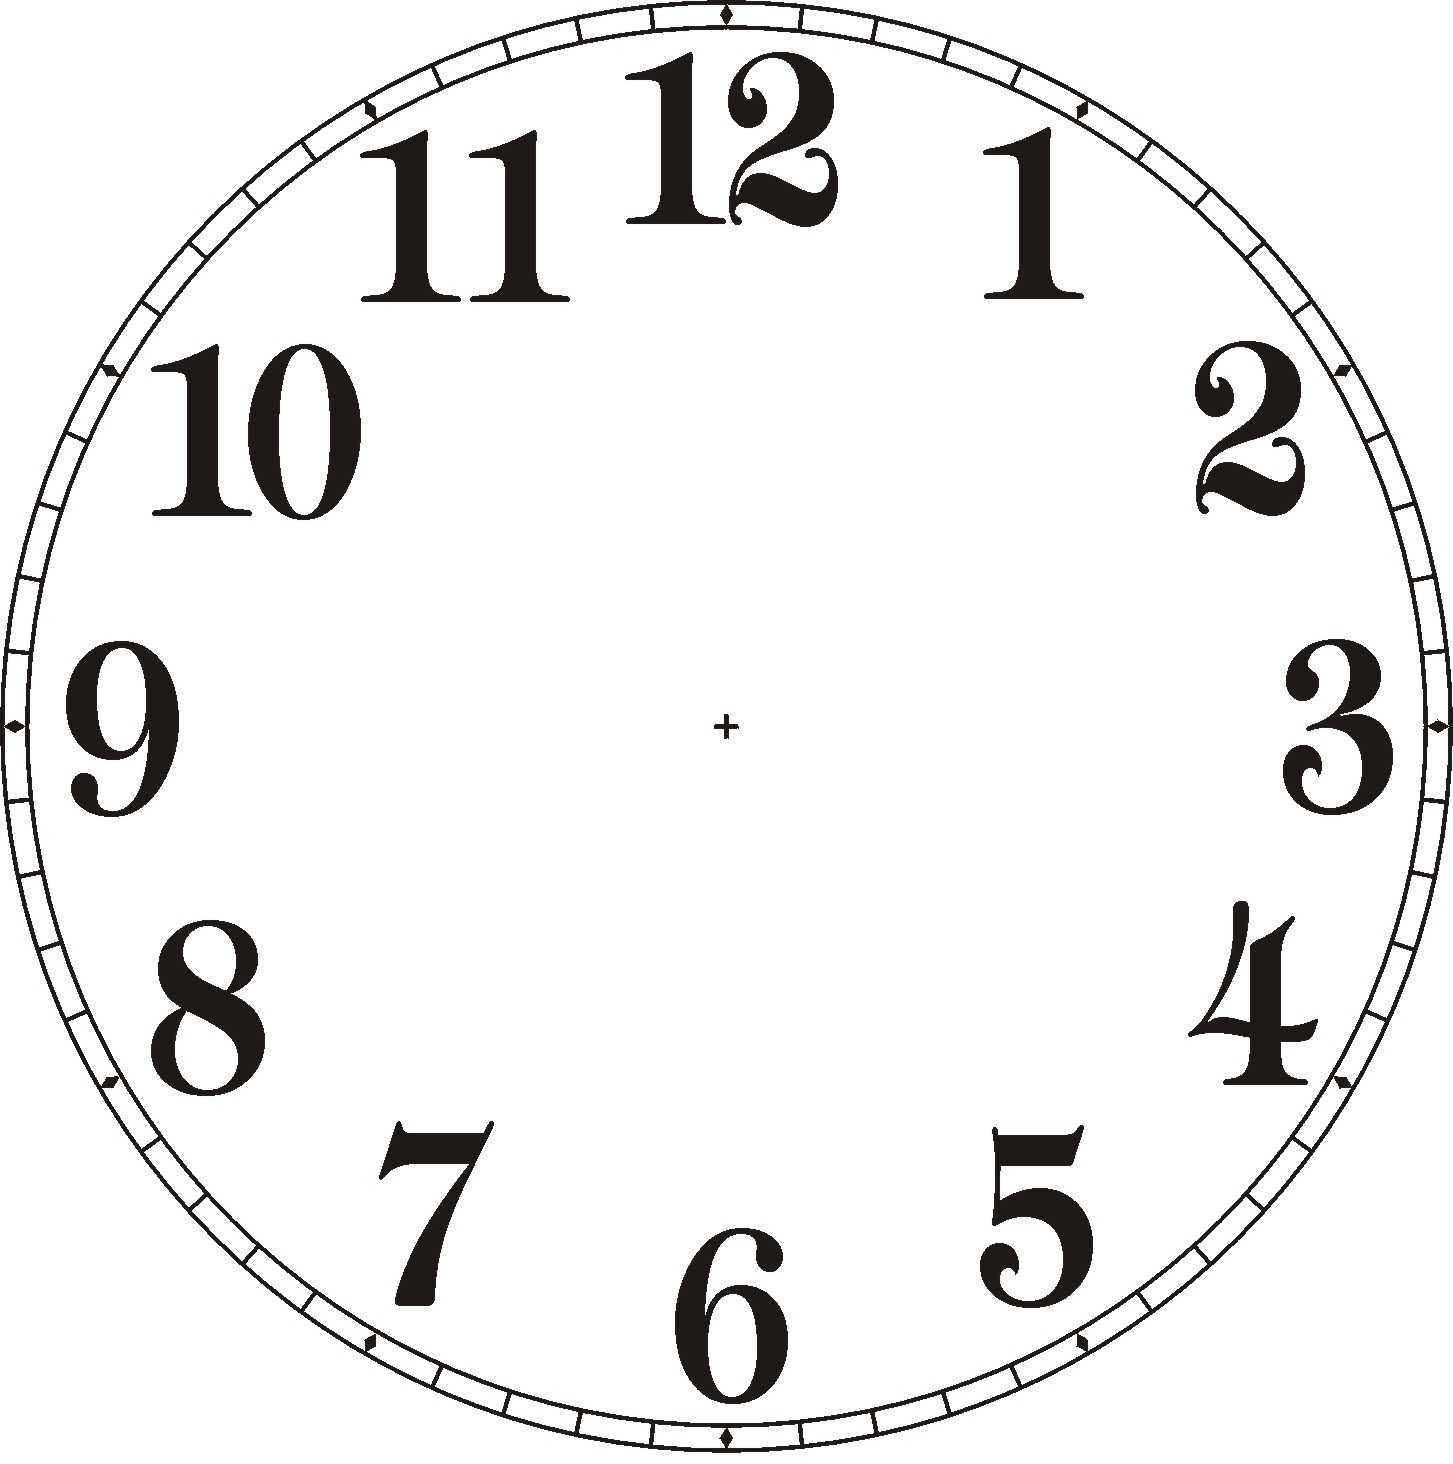 Clock numbers clipart clip freeuse download Images Of A Clock | Free download best Images Of A Clock on ... clip freeuse download